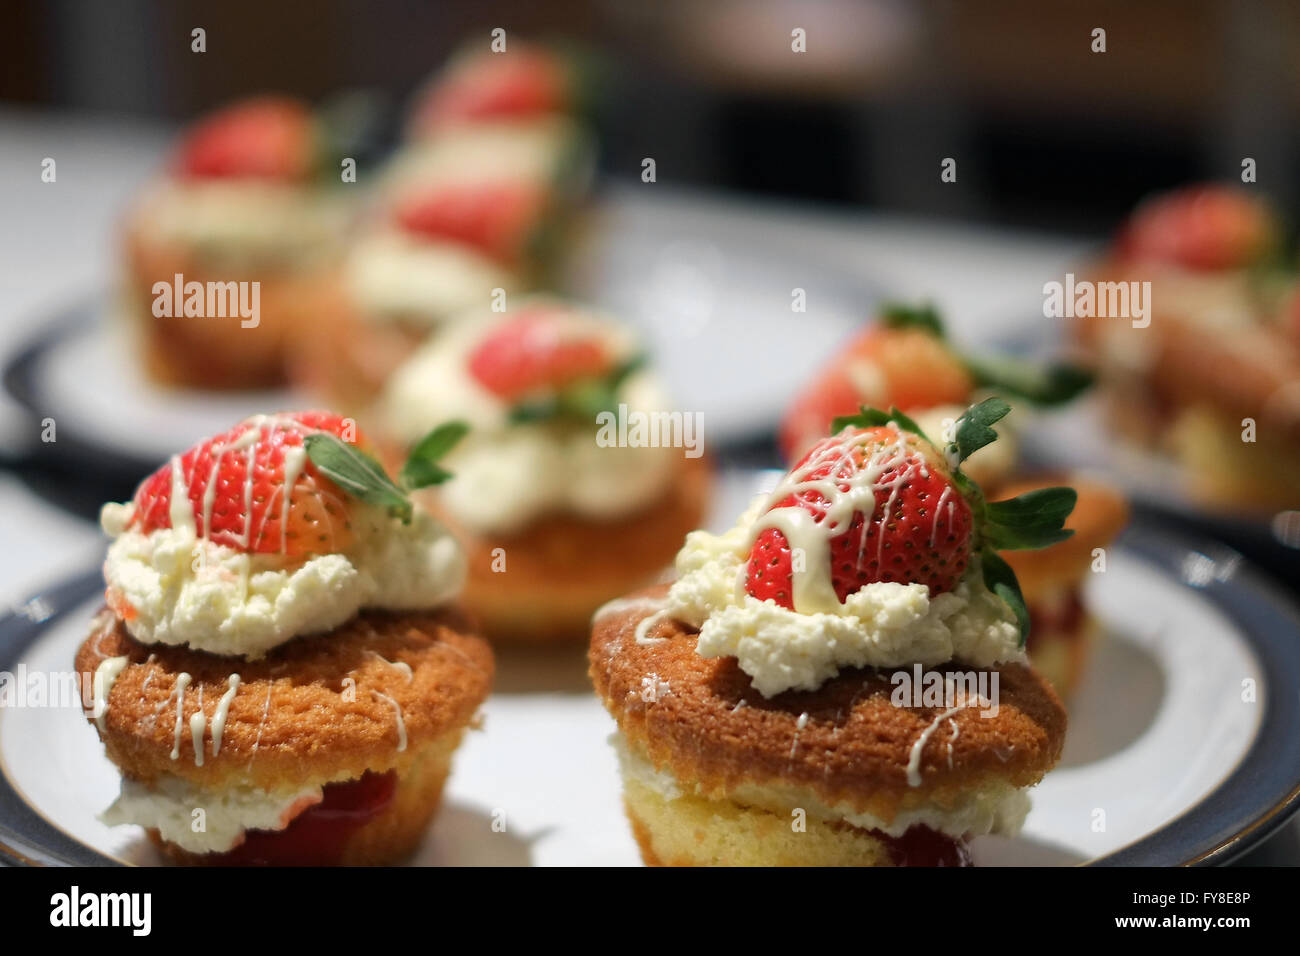 Homemade strawberry and cream cakes as part of a student baking project. Stock Photo